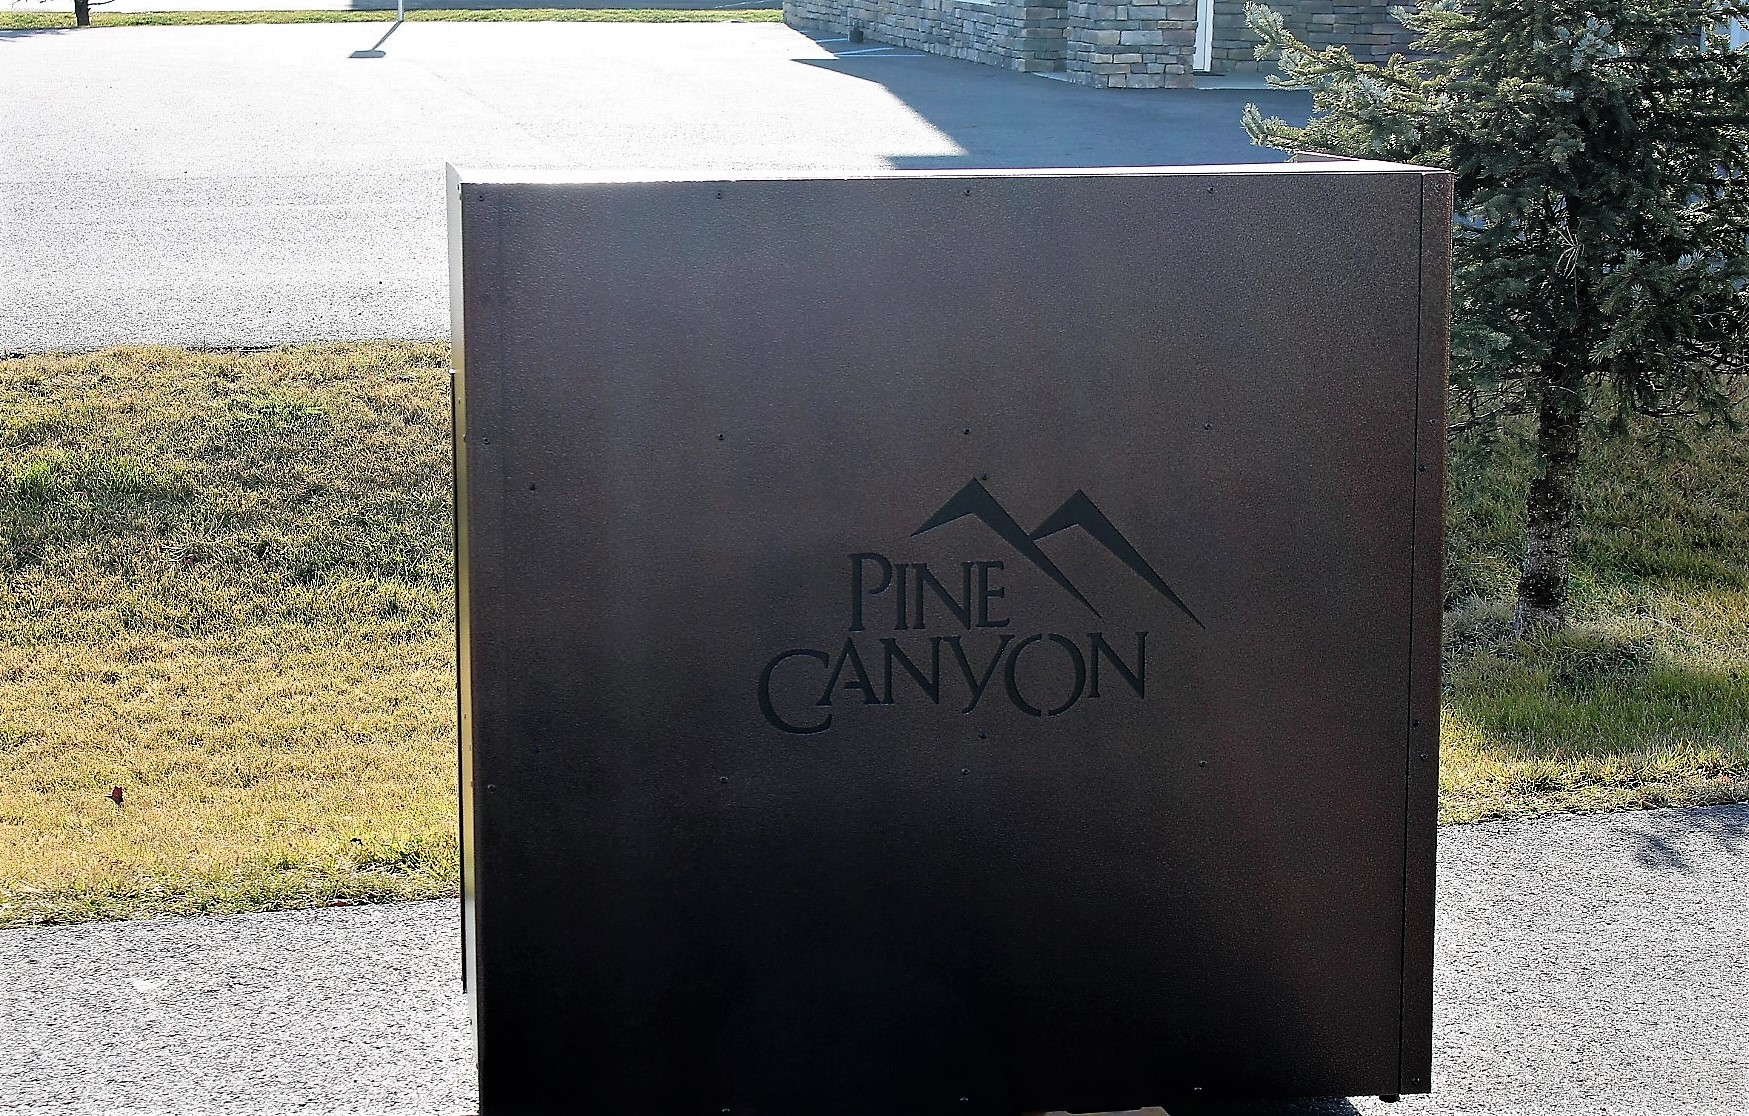 Large Podium -Pine Canyon